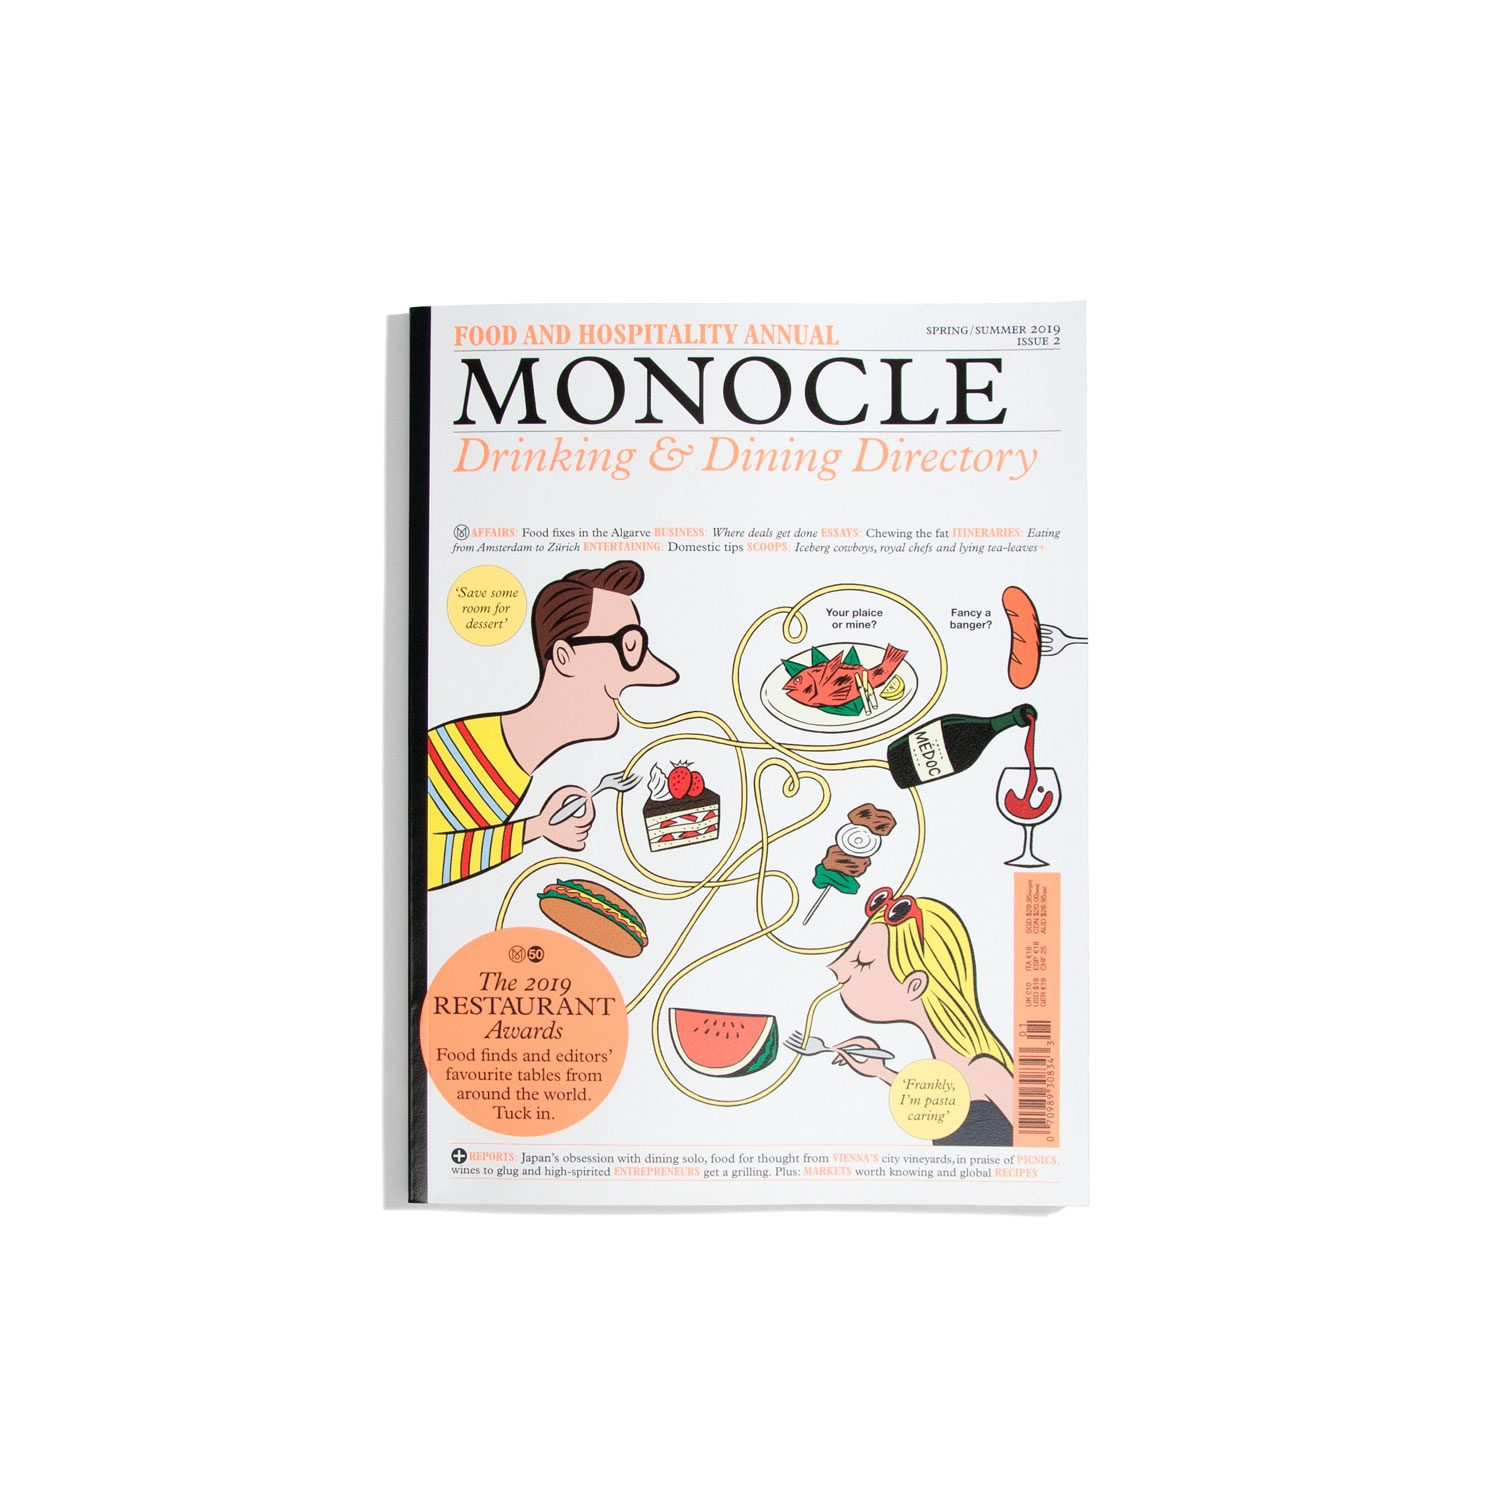 Monocle Drinking & Dining Directory #2 S/S 2019